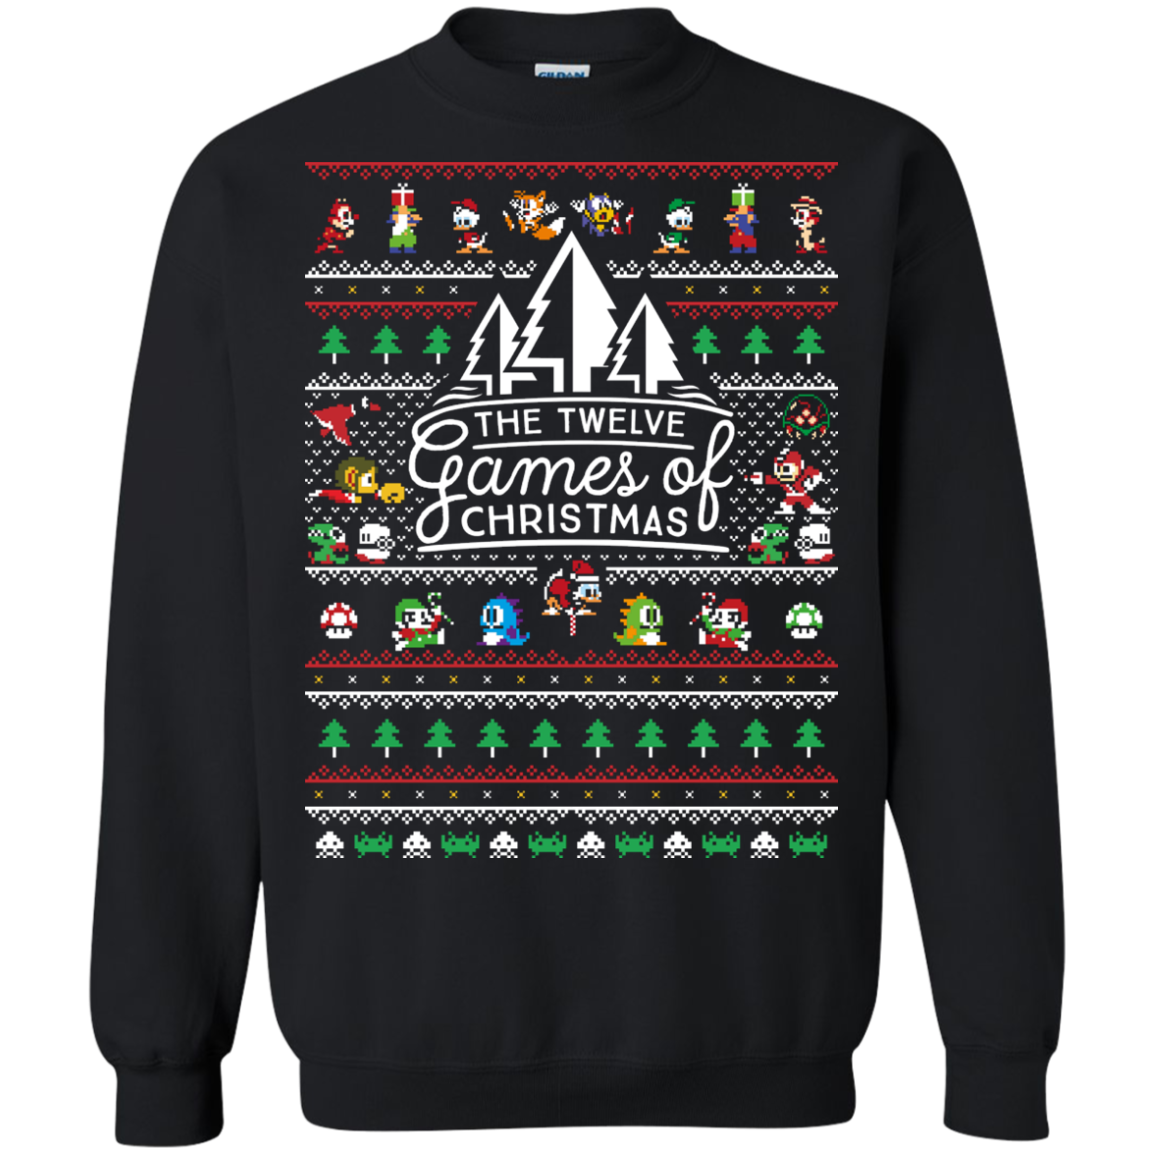 12 Games of Christmas Sweatshirt Ugly Christmas Sweater